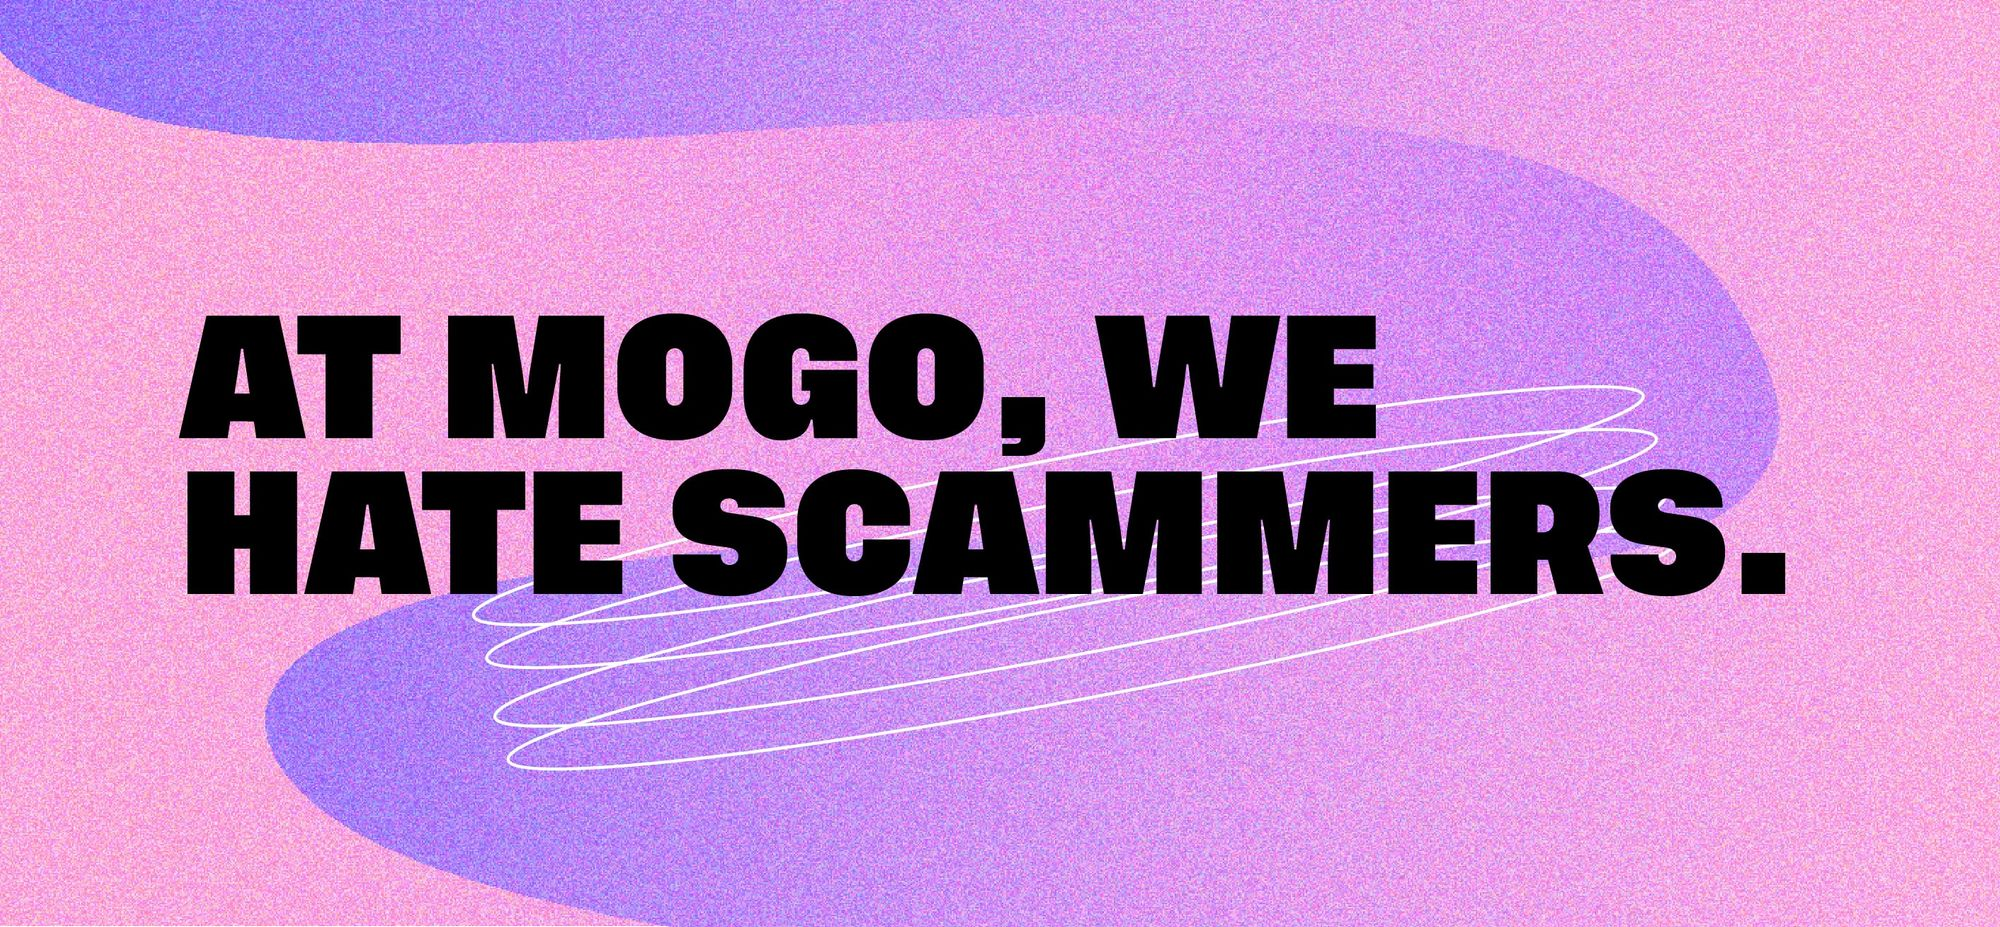 At Mogo, we hate scammers.